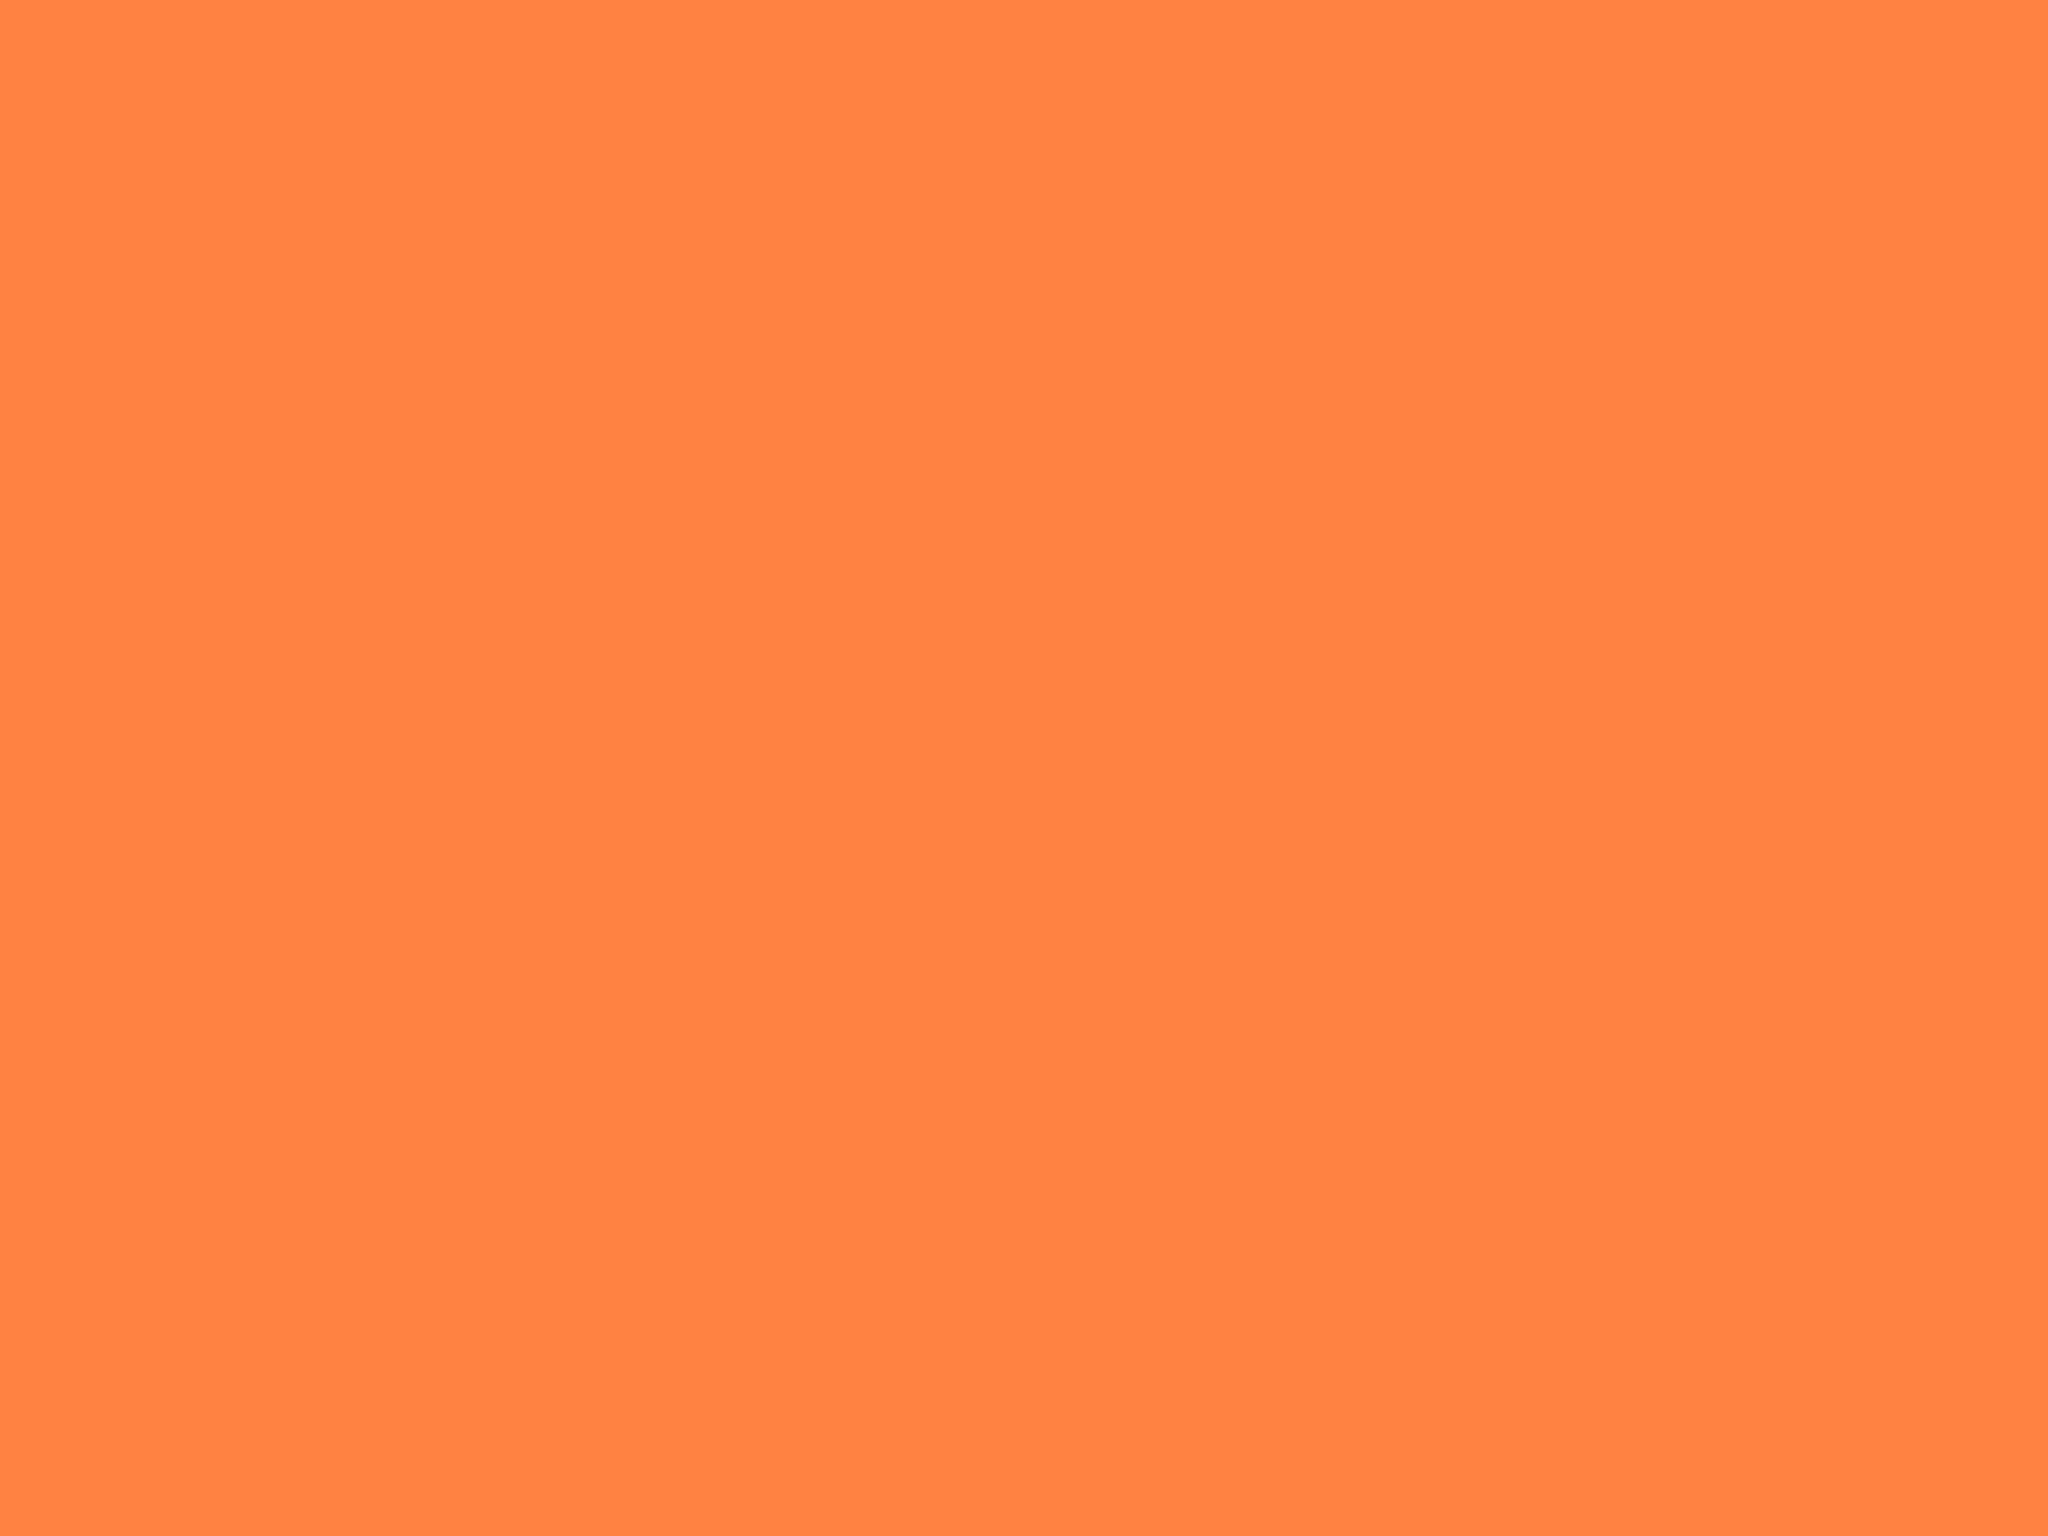 2048x1536 Mango Tango Solid Color Background